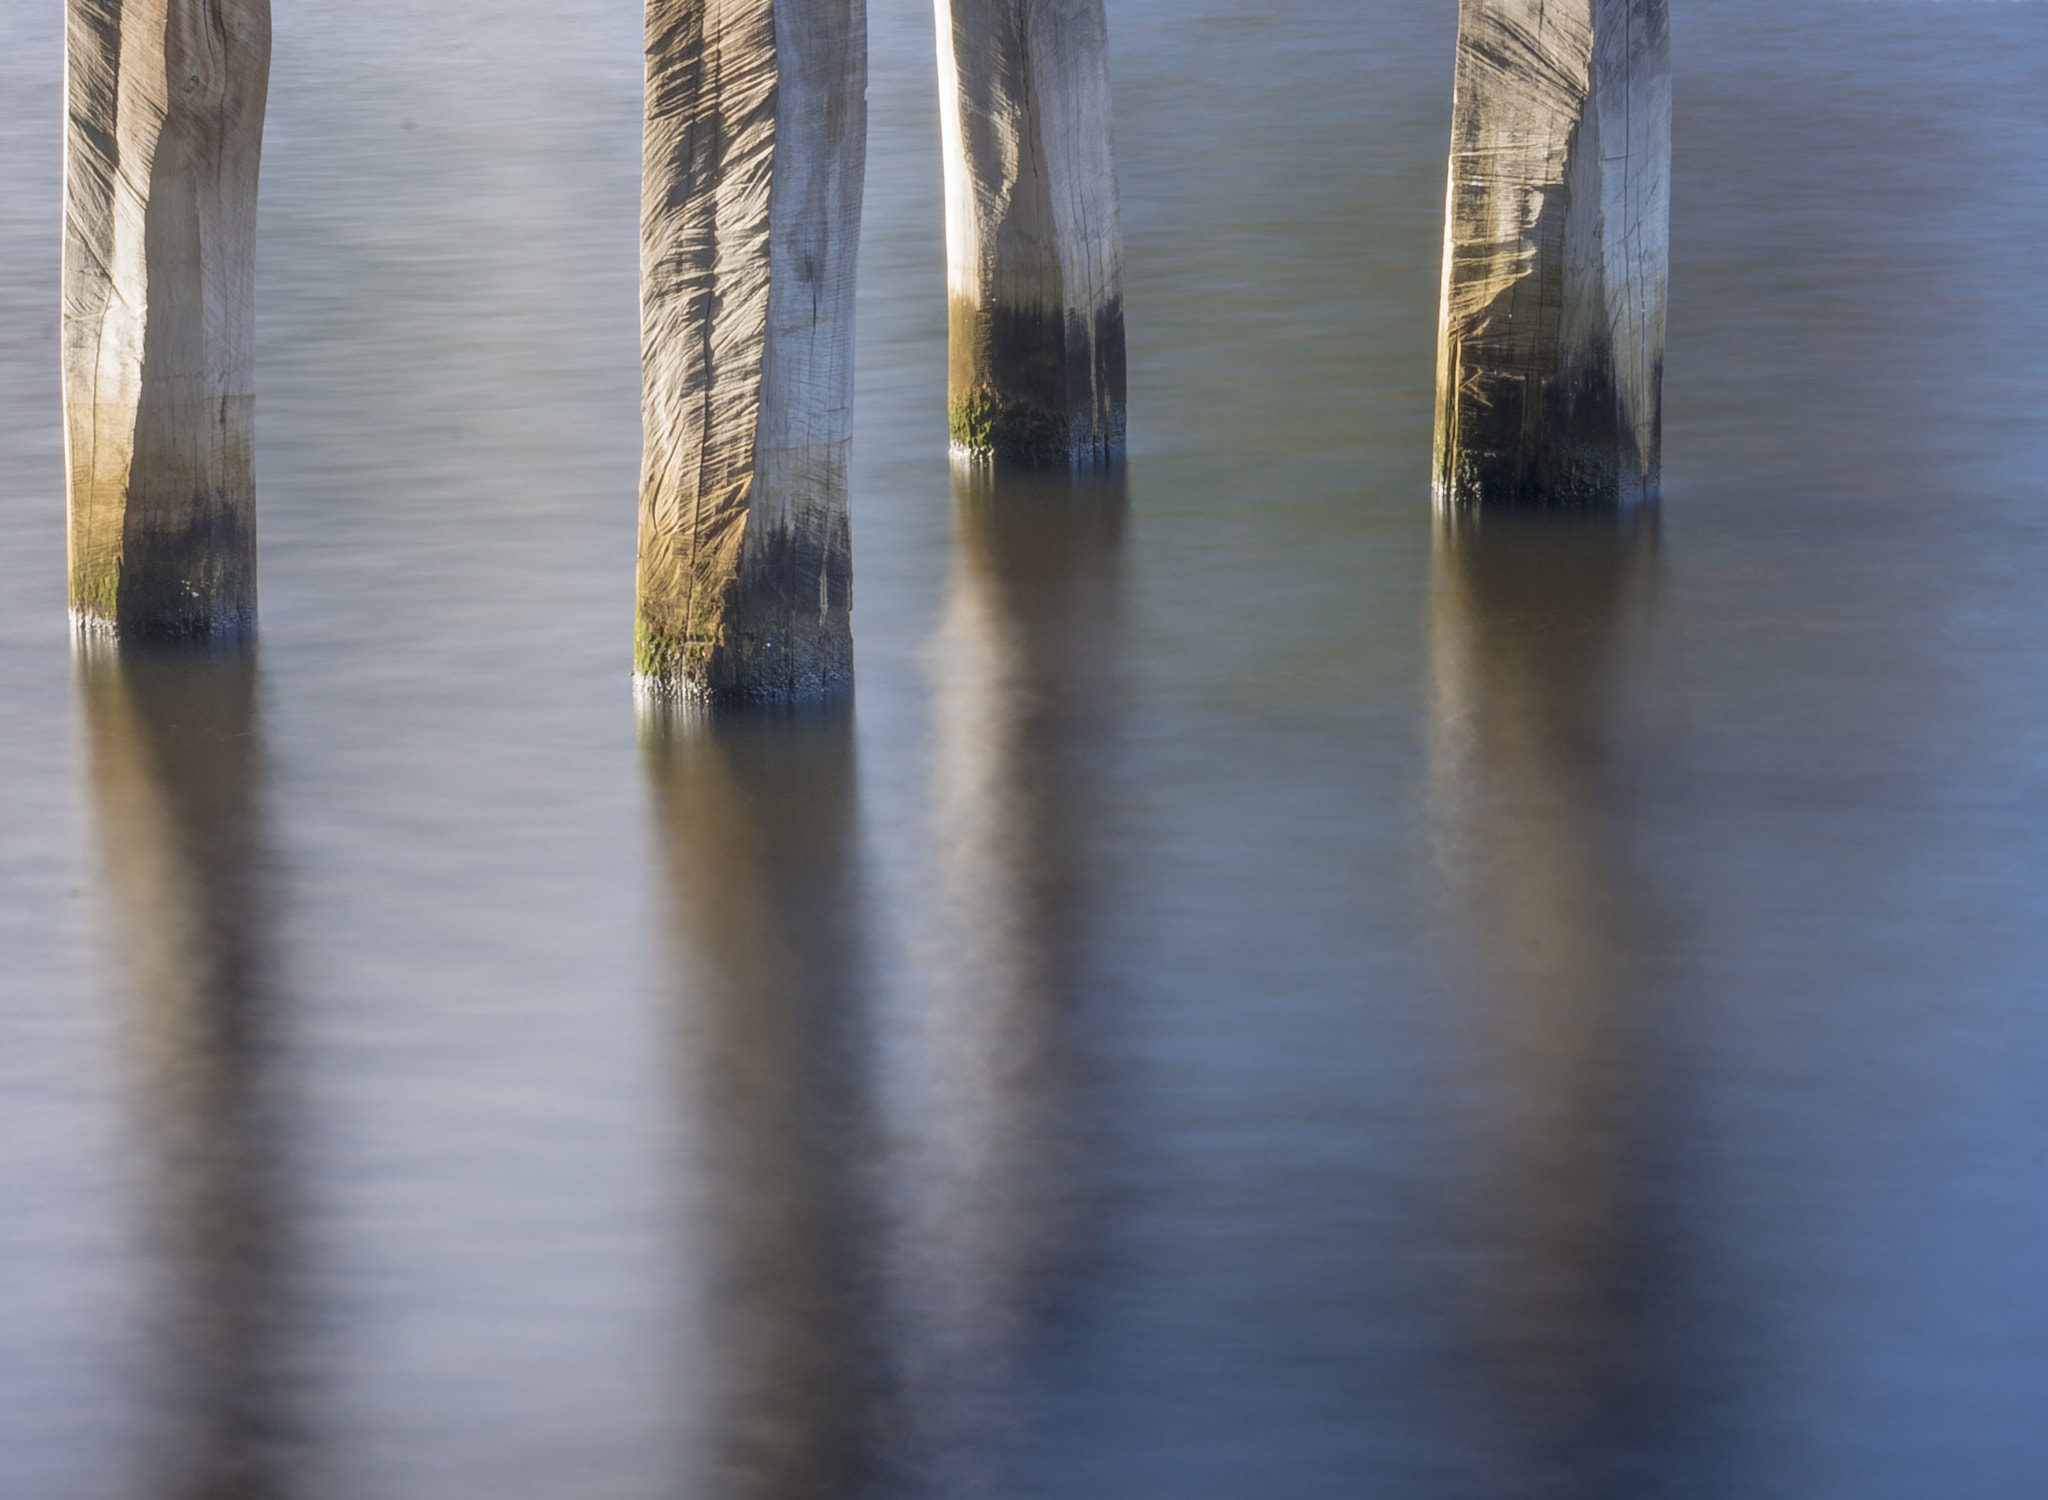 Photograph Pier Posts by Reza Marzooghi on 500px